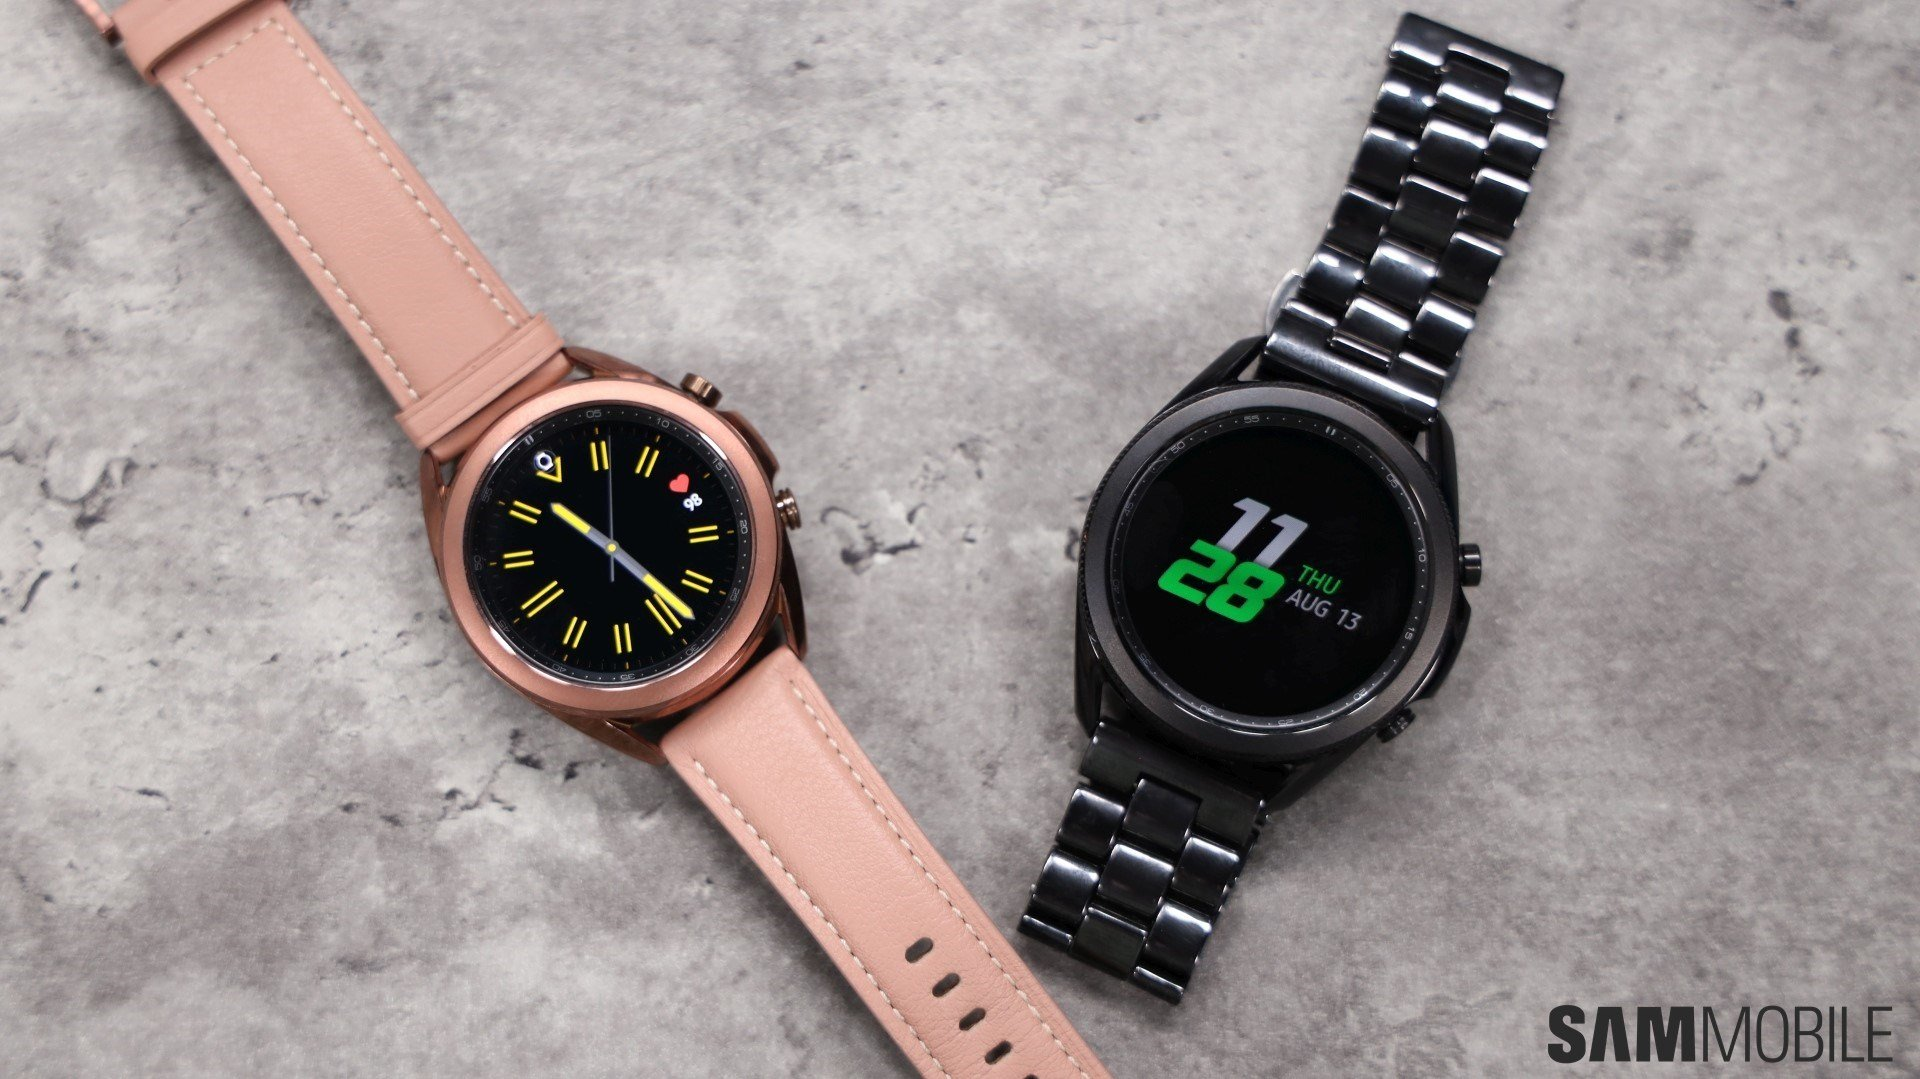 Updates brings ECG to Galaxy Watch 3 in USA,Tizen 5.5 to Watch Active 2 - SamMobile